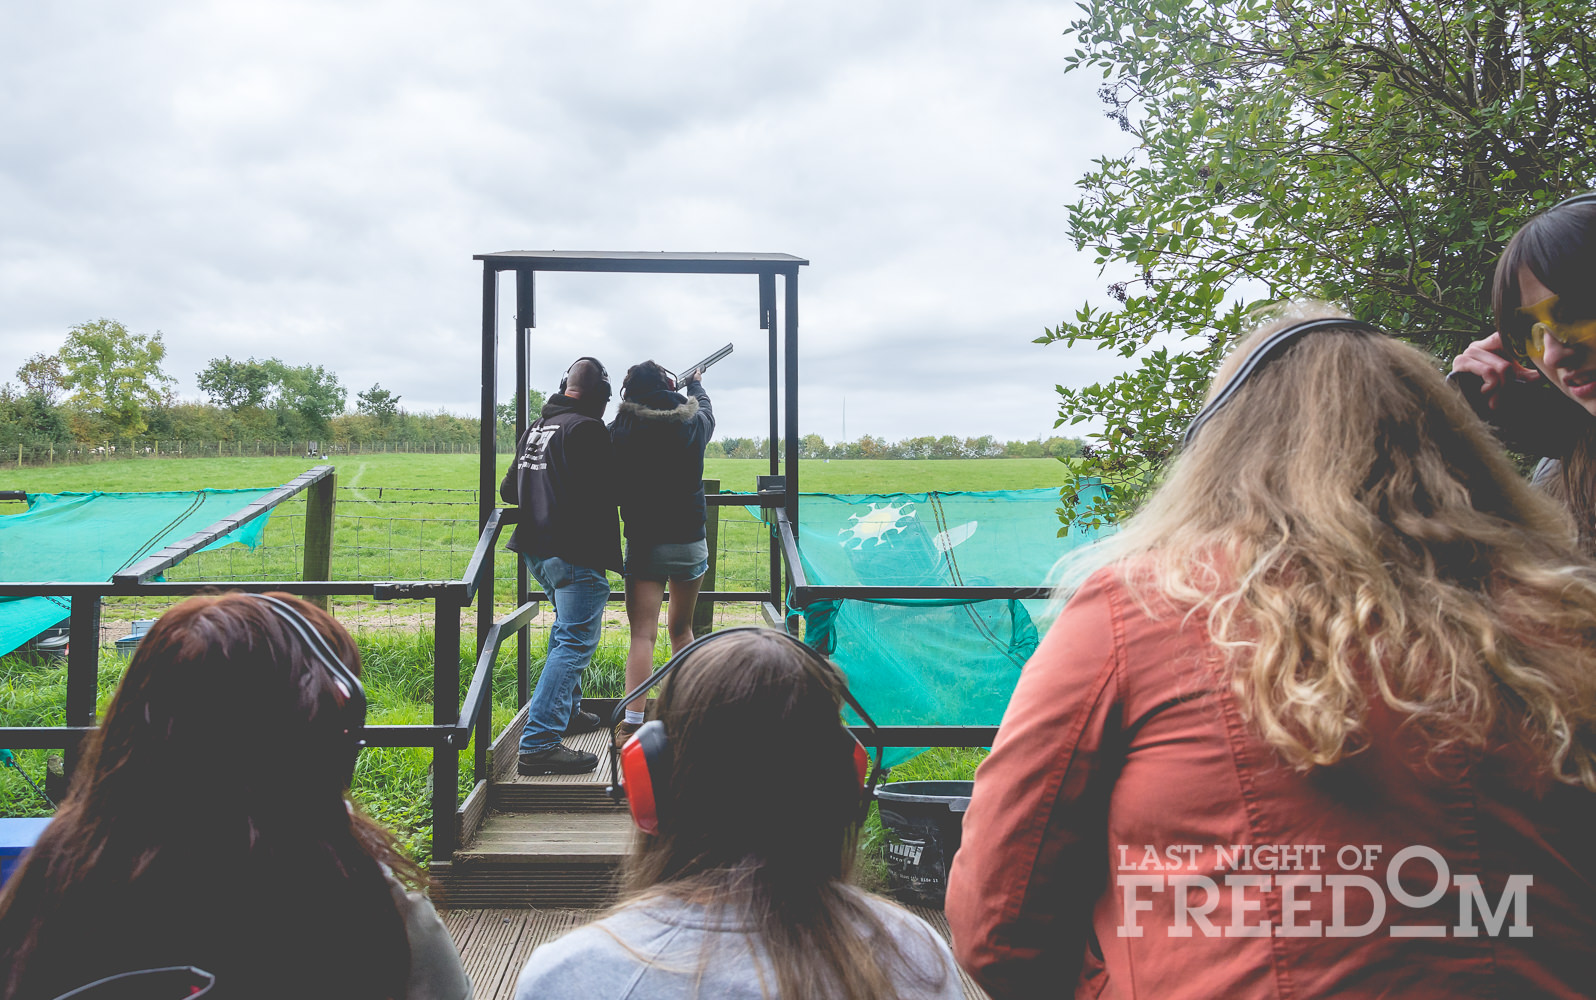 A girl firing a gun with lots of people watching her